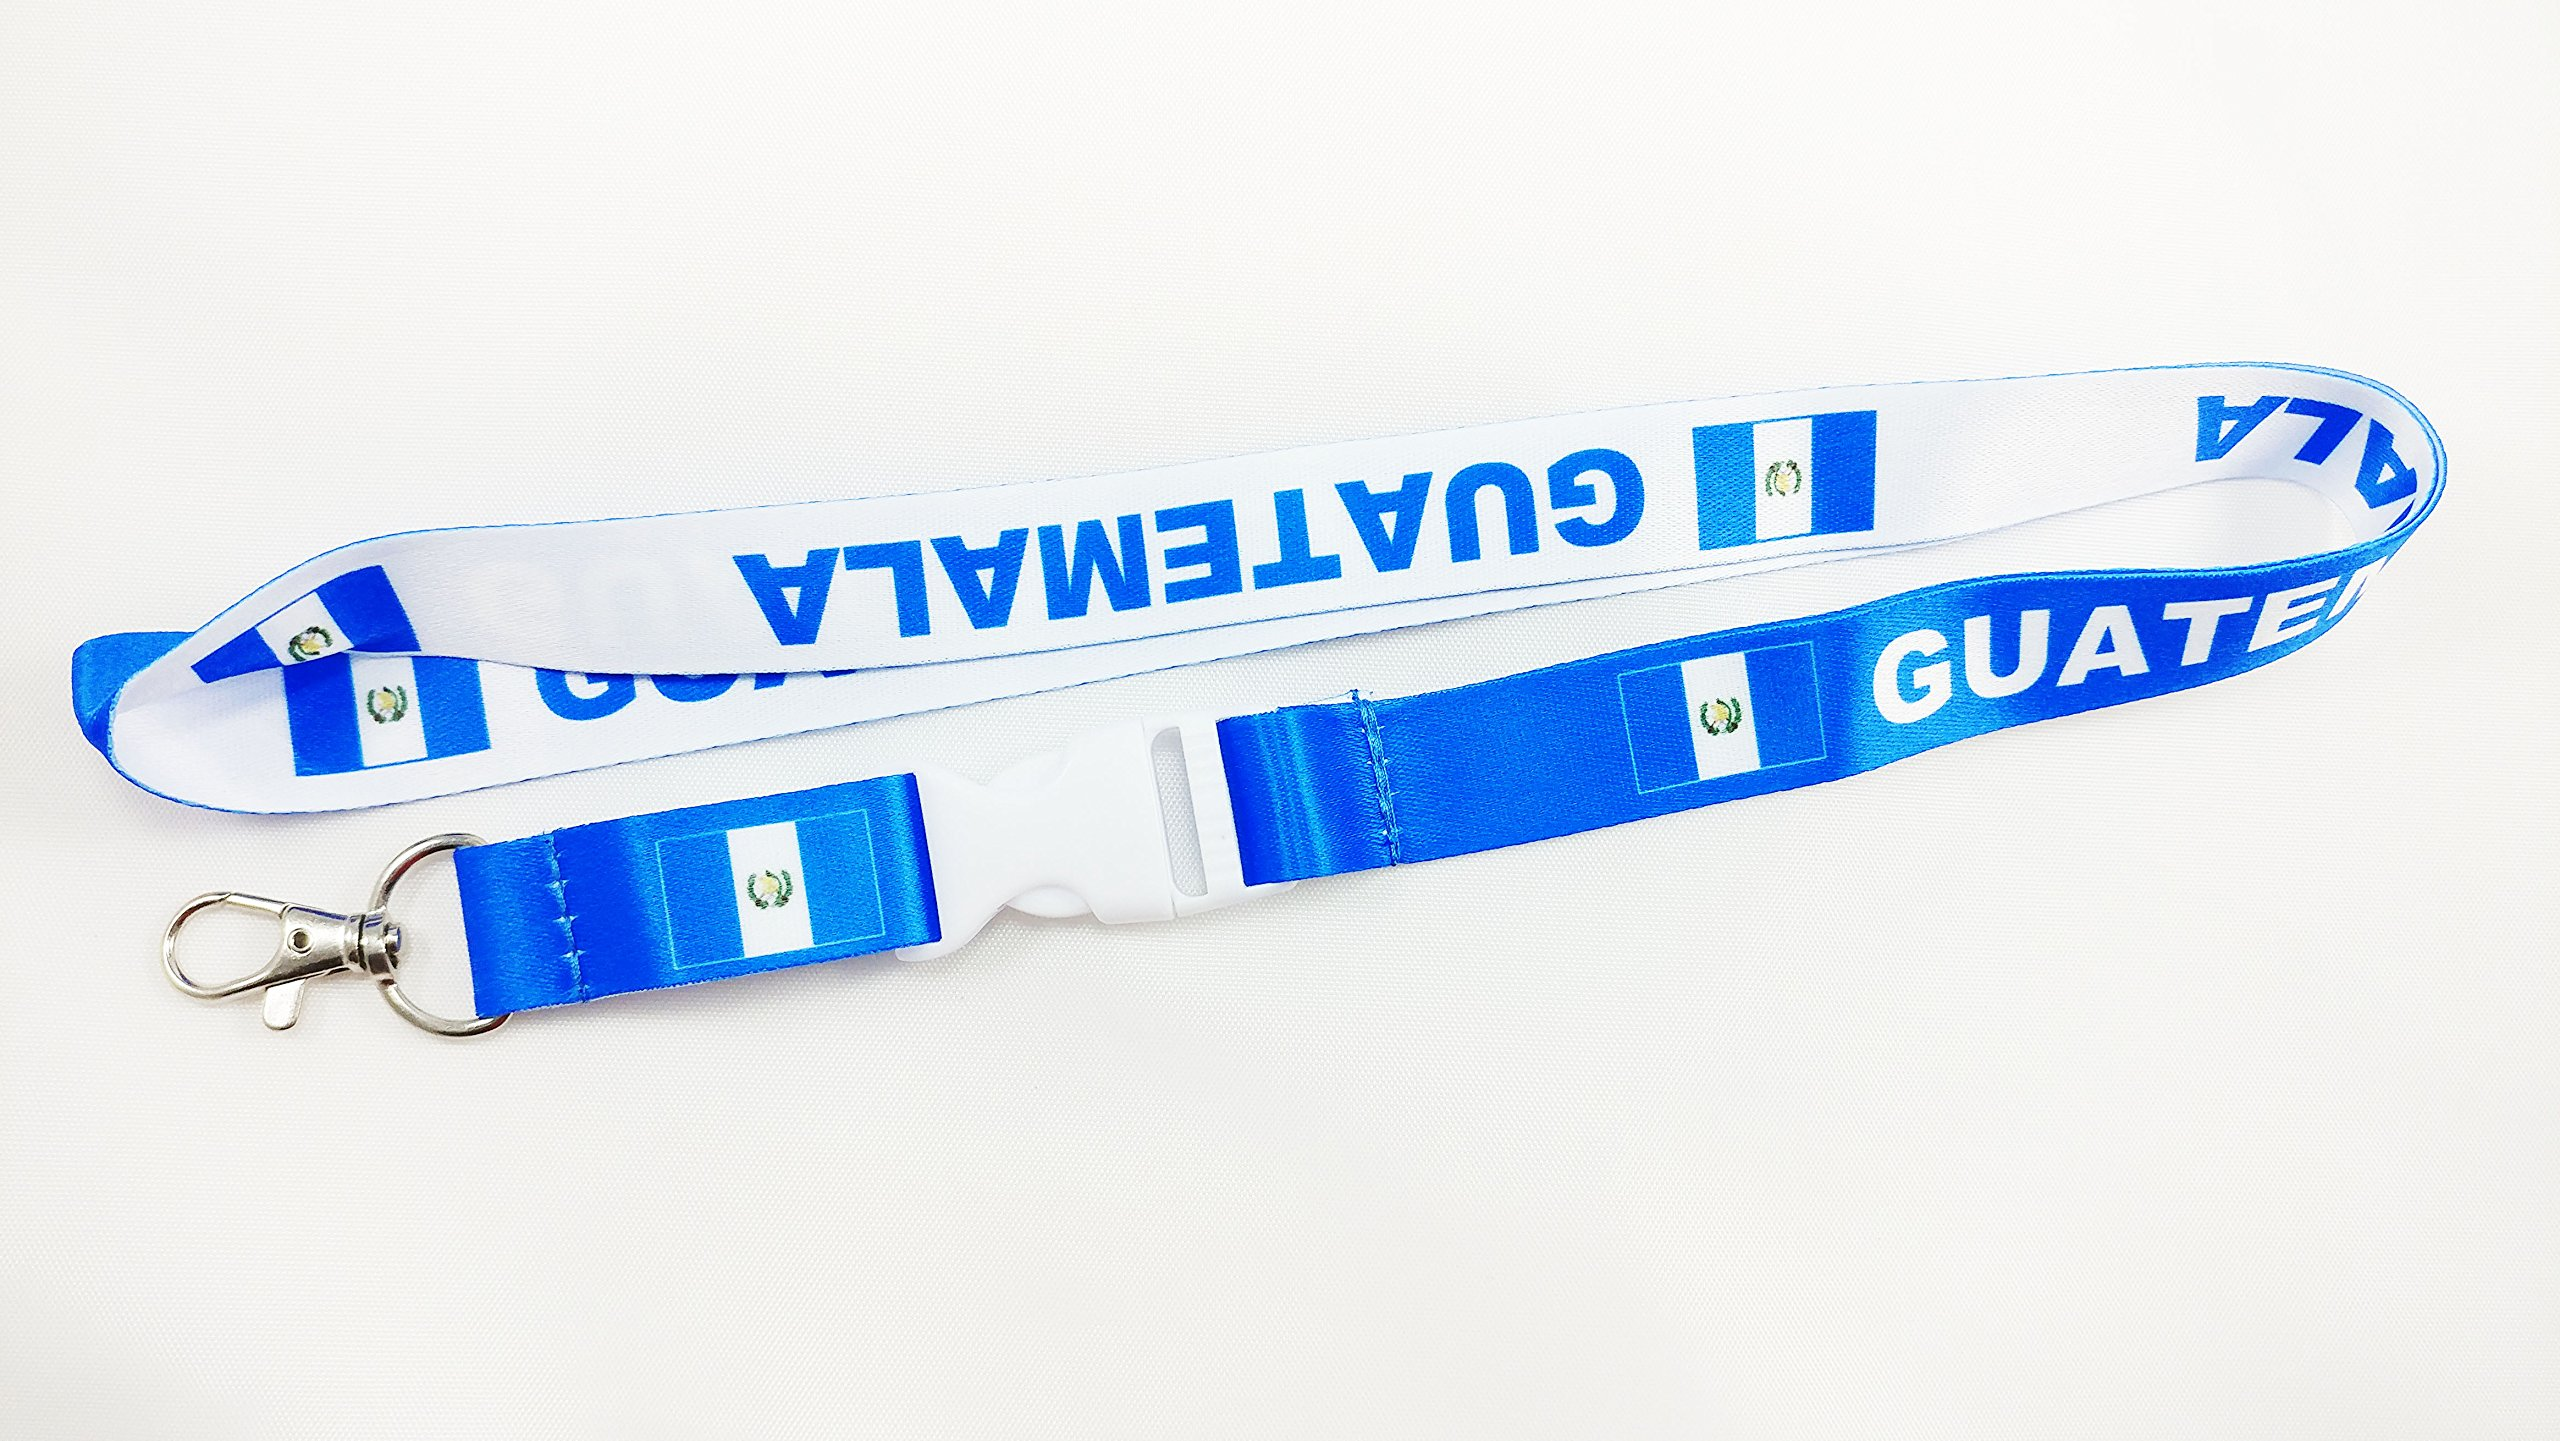 Guatemala flag reversible Lanyard/keychain with clip for keys or id badges. Perfect for school id badges, work badges, car keys, house keys, work keys (50 Lanyards)